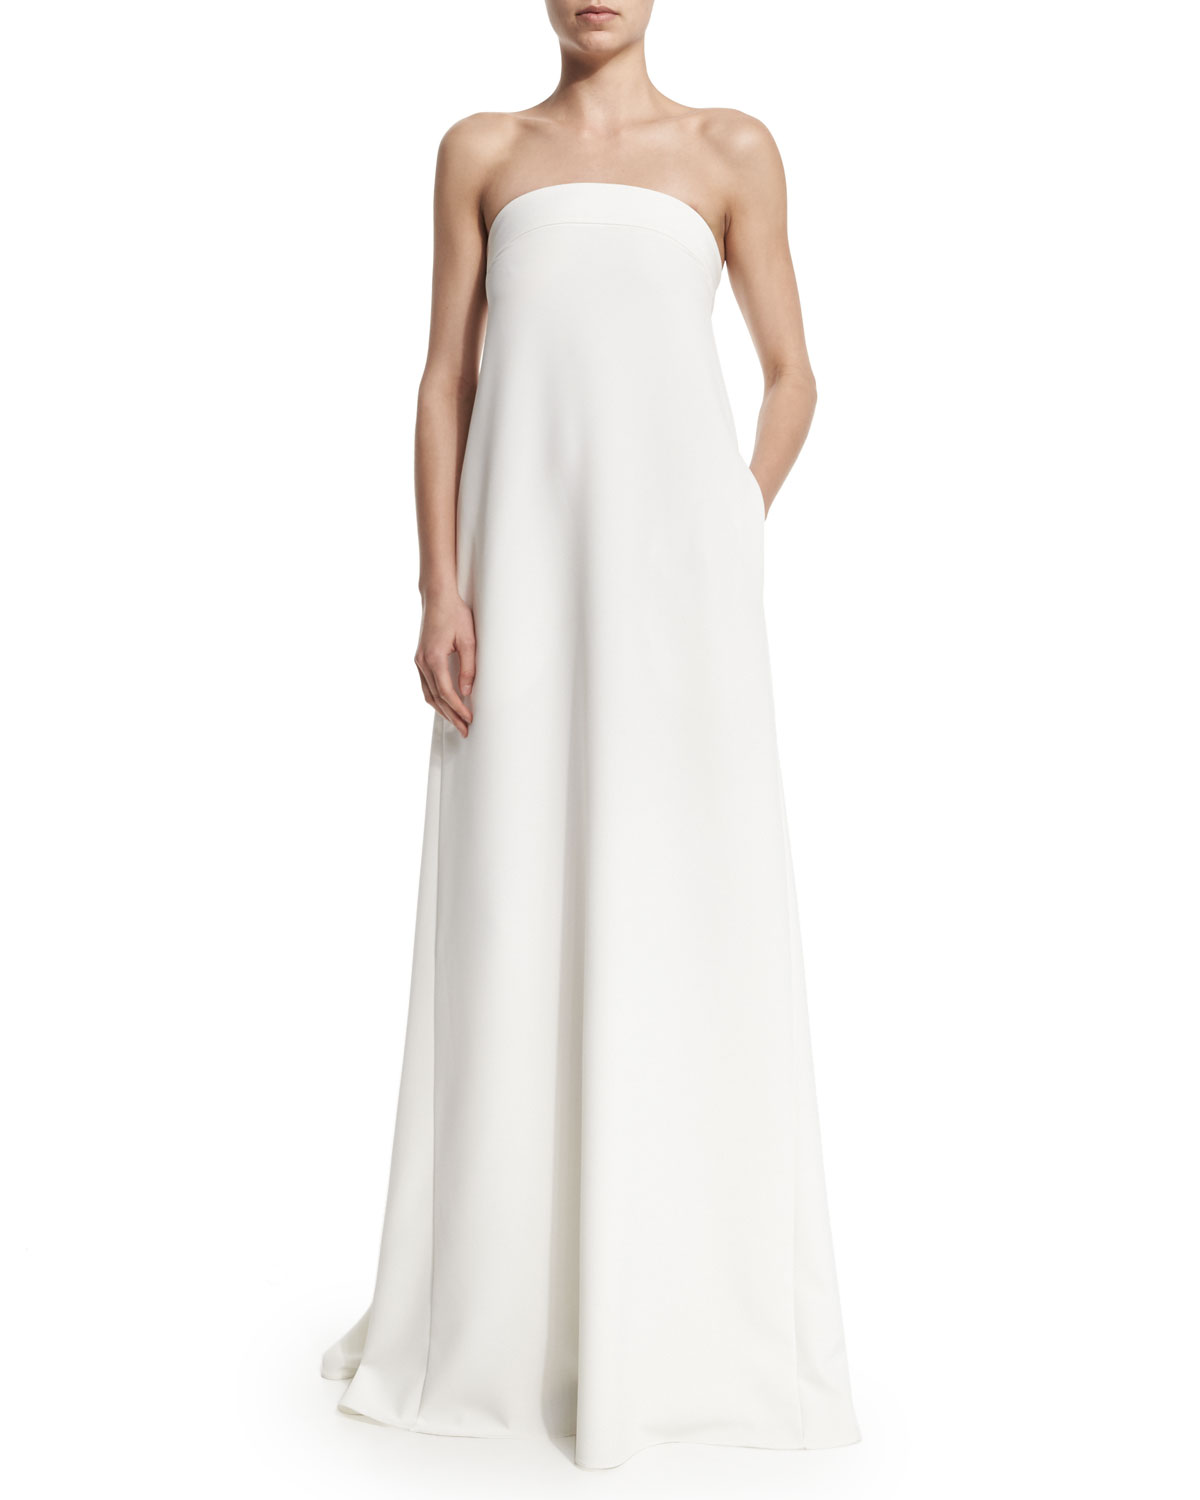 Strapless Banded Trapeze Gown, Size: 0, White - Milly